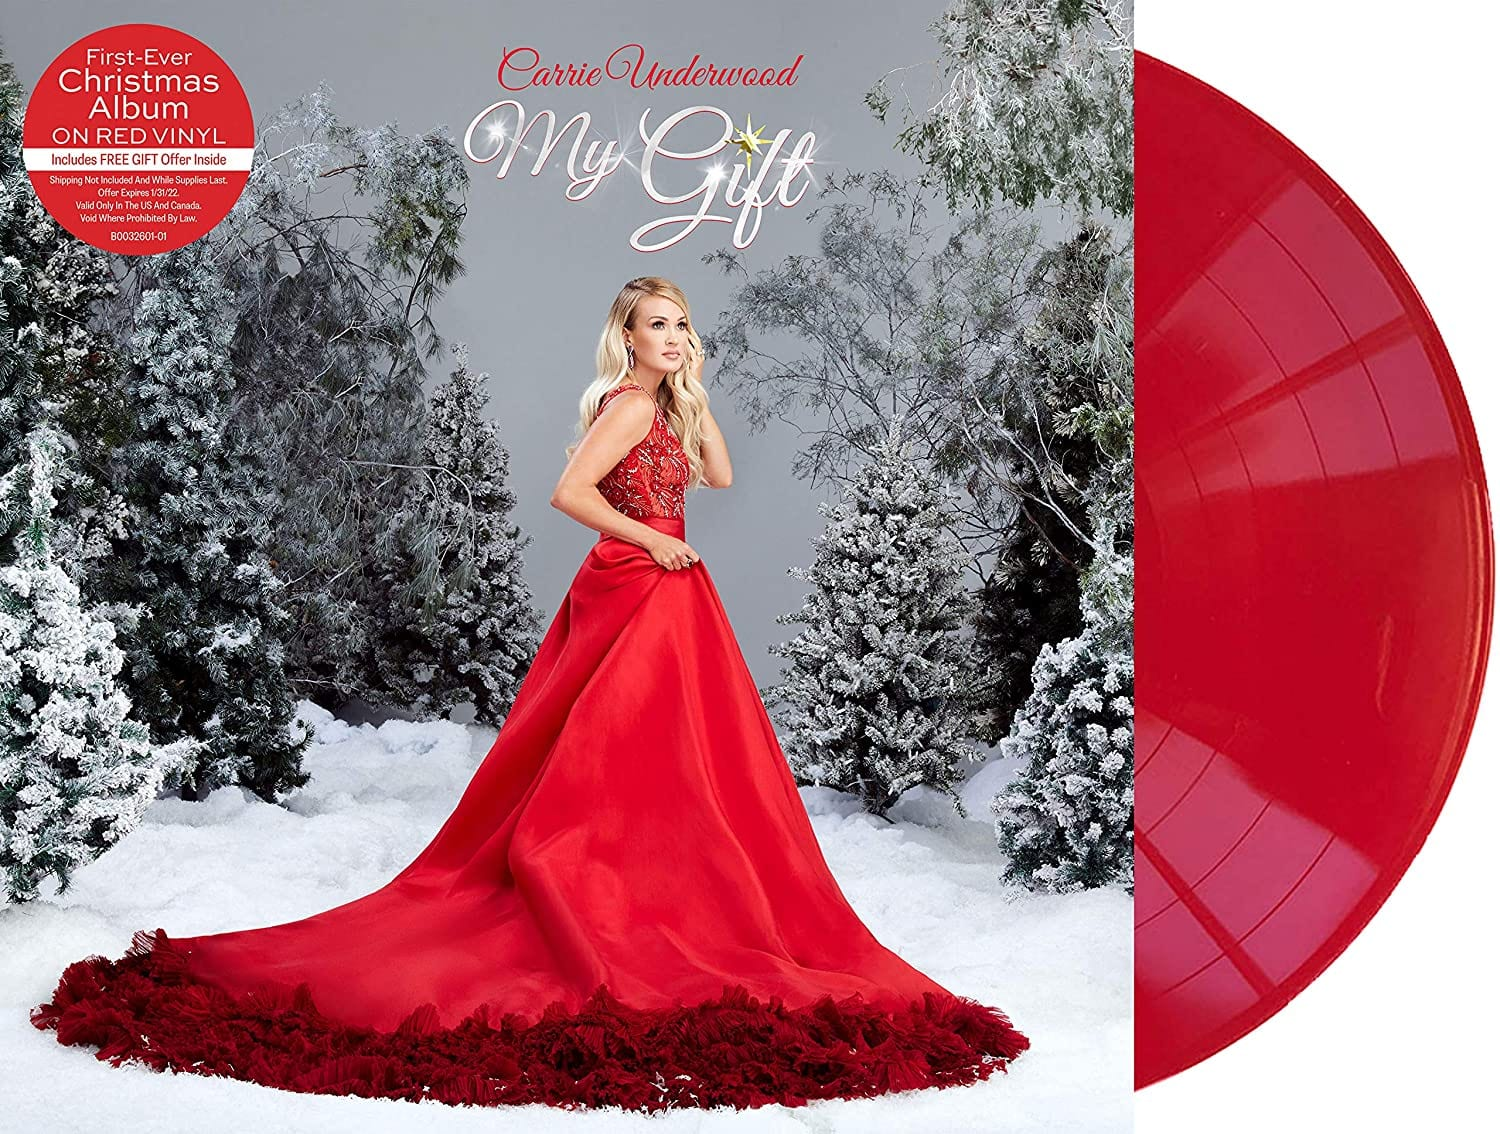 Carrie Underwood - My Gift [LP] (Red Vinyl, redeemable gift offer inside)